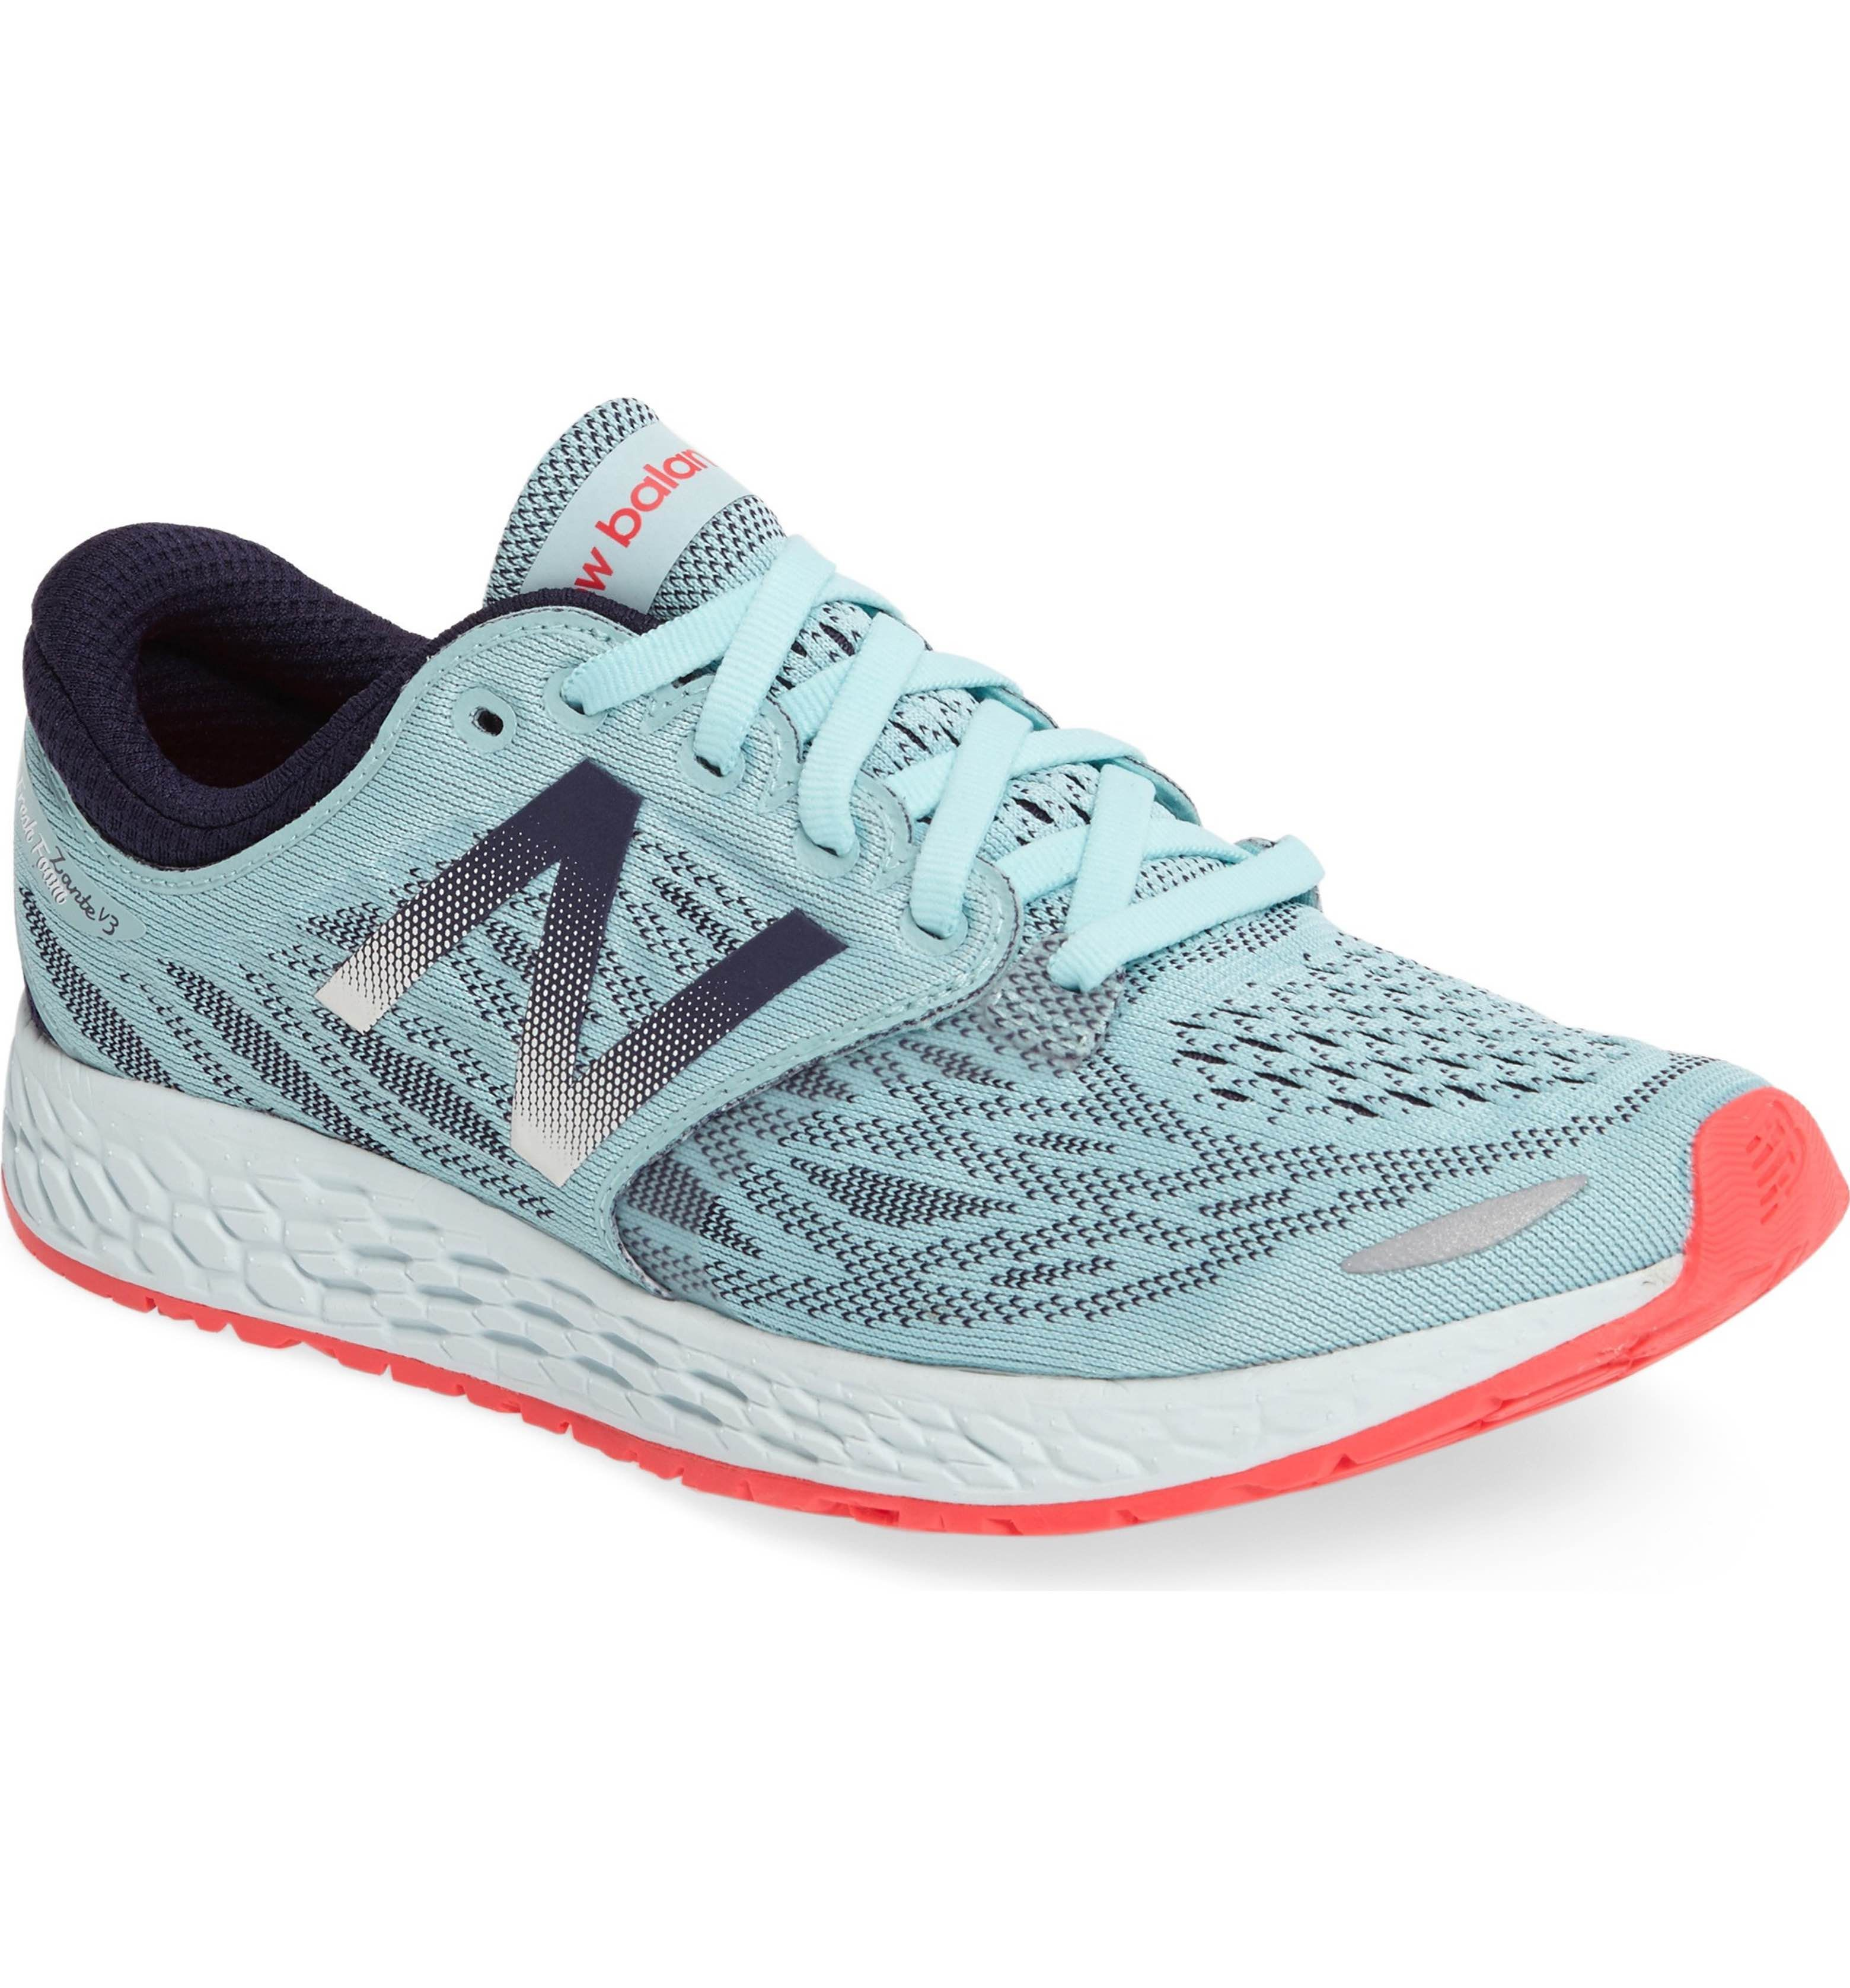 New Balance 1260 Moda casual